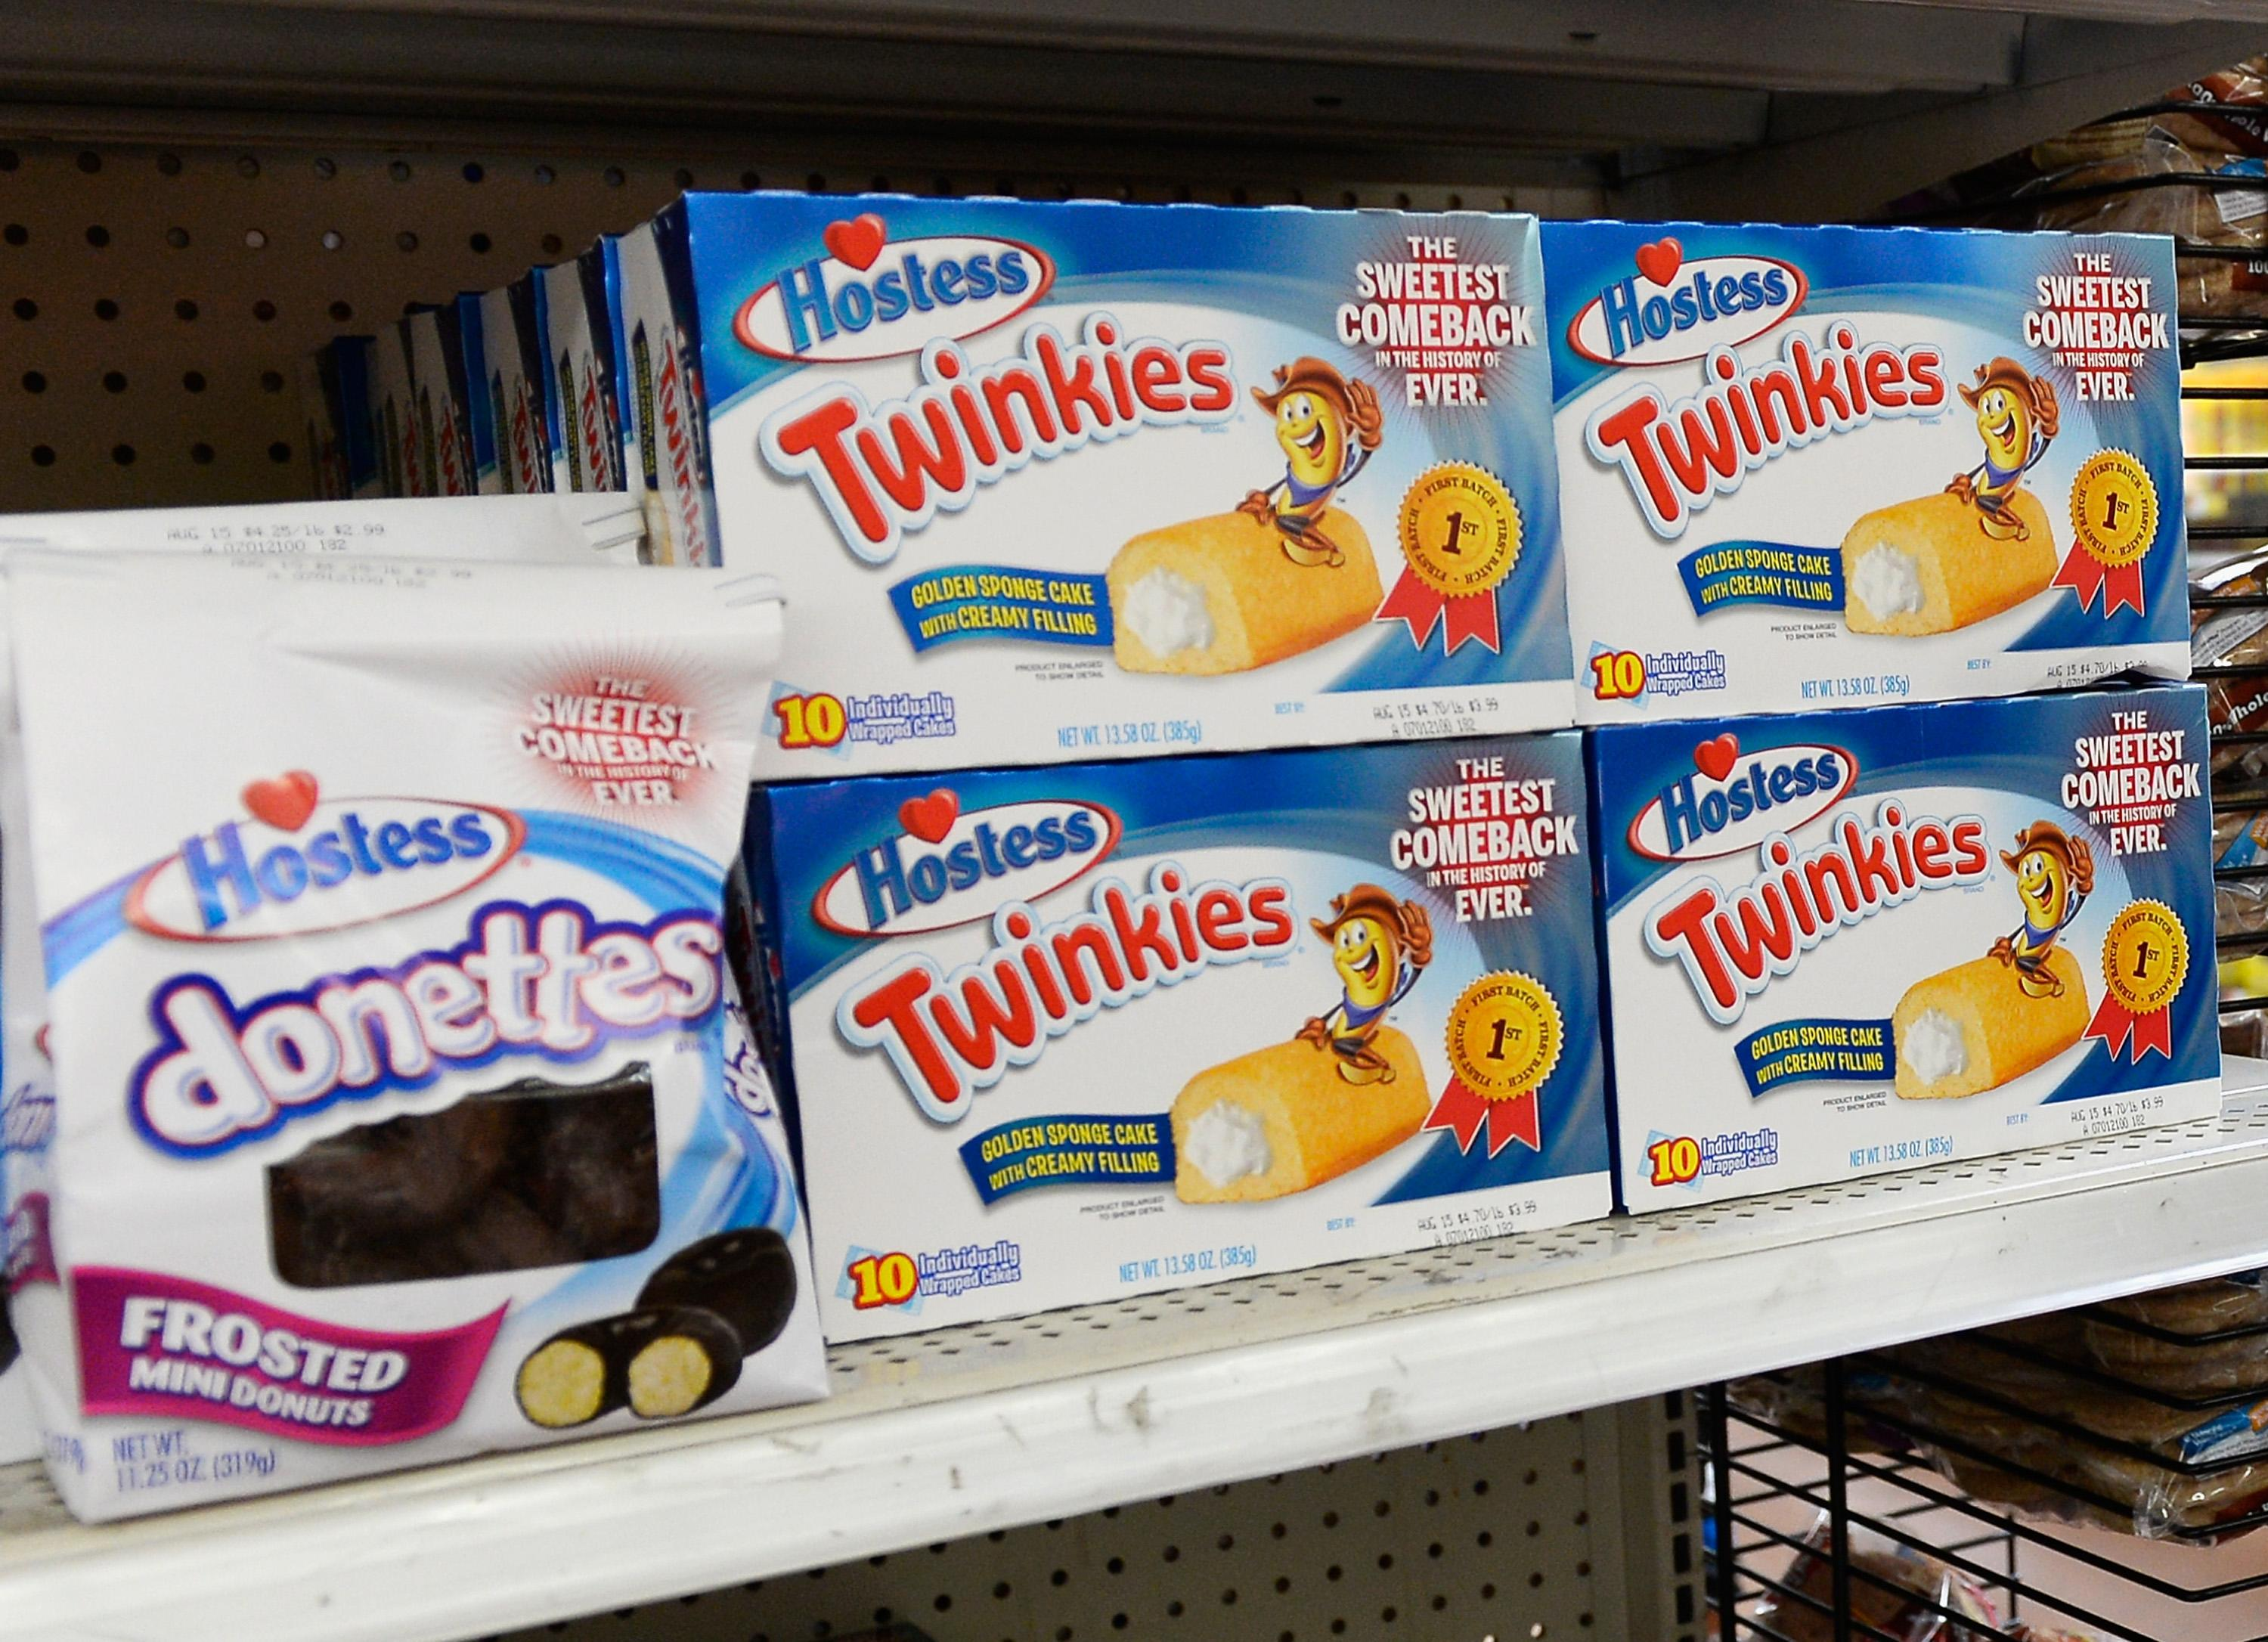 Coronavirus outbreak may have unleashed panic buying of Hostess Twinkies and Ding Dongs